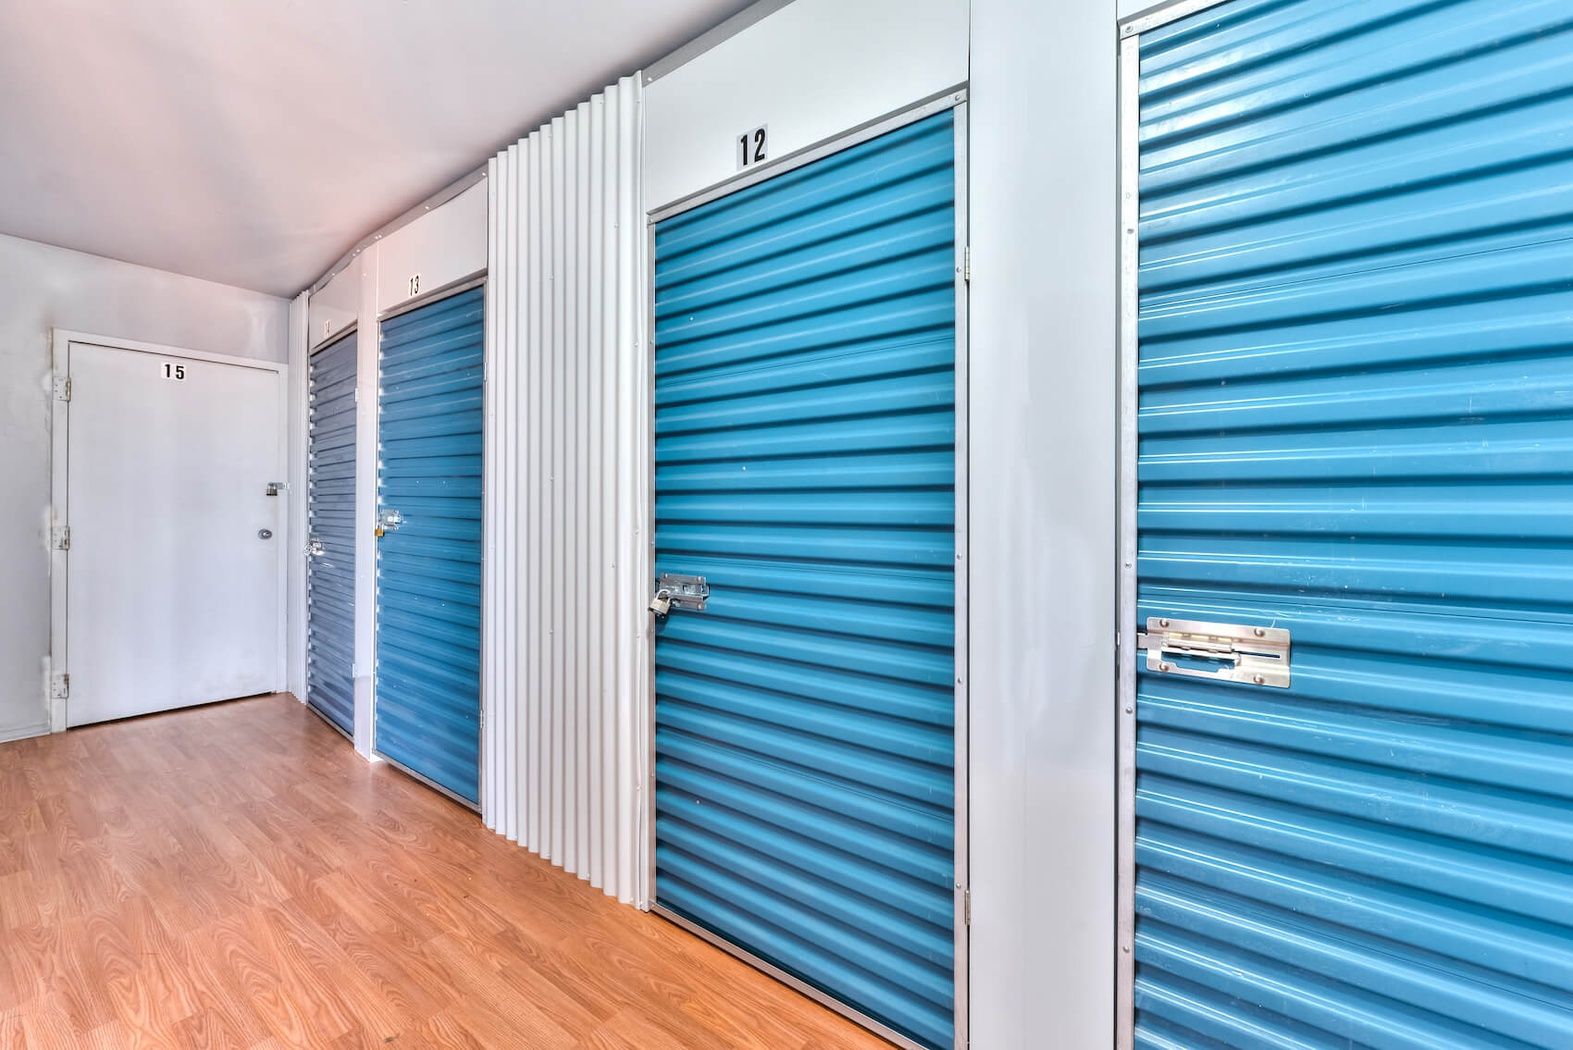 Rent St-Jérôme storage units at 5 Rue John F. Kennedy. We offer a wide-range of affordable self storage units and your first 4 weeks are free!